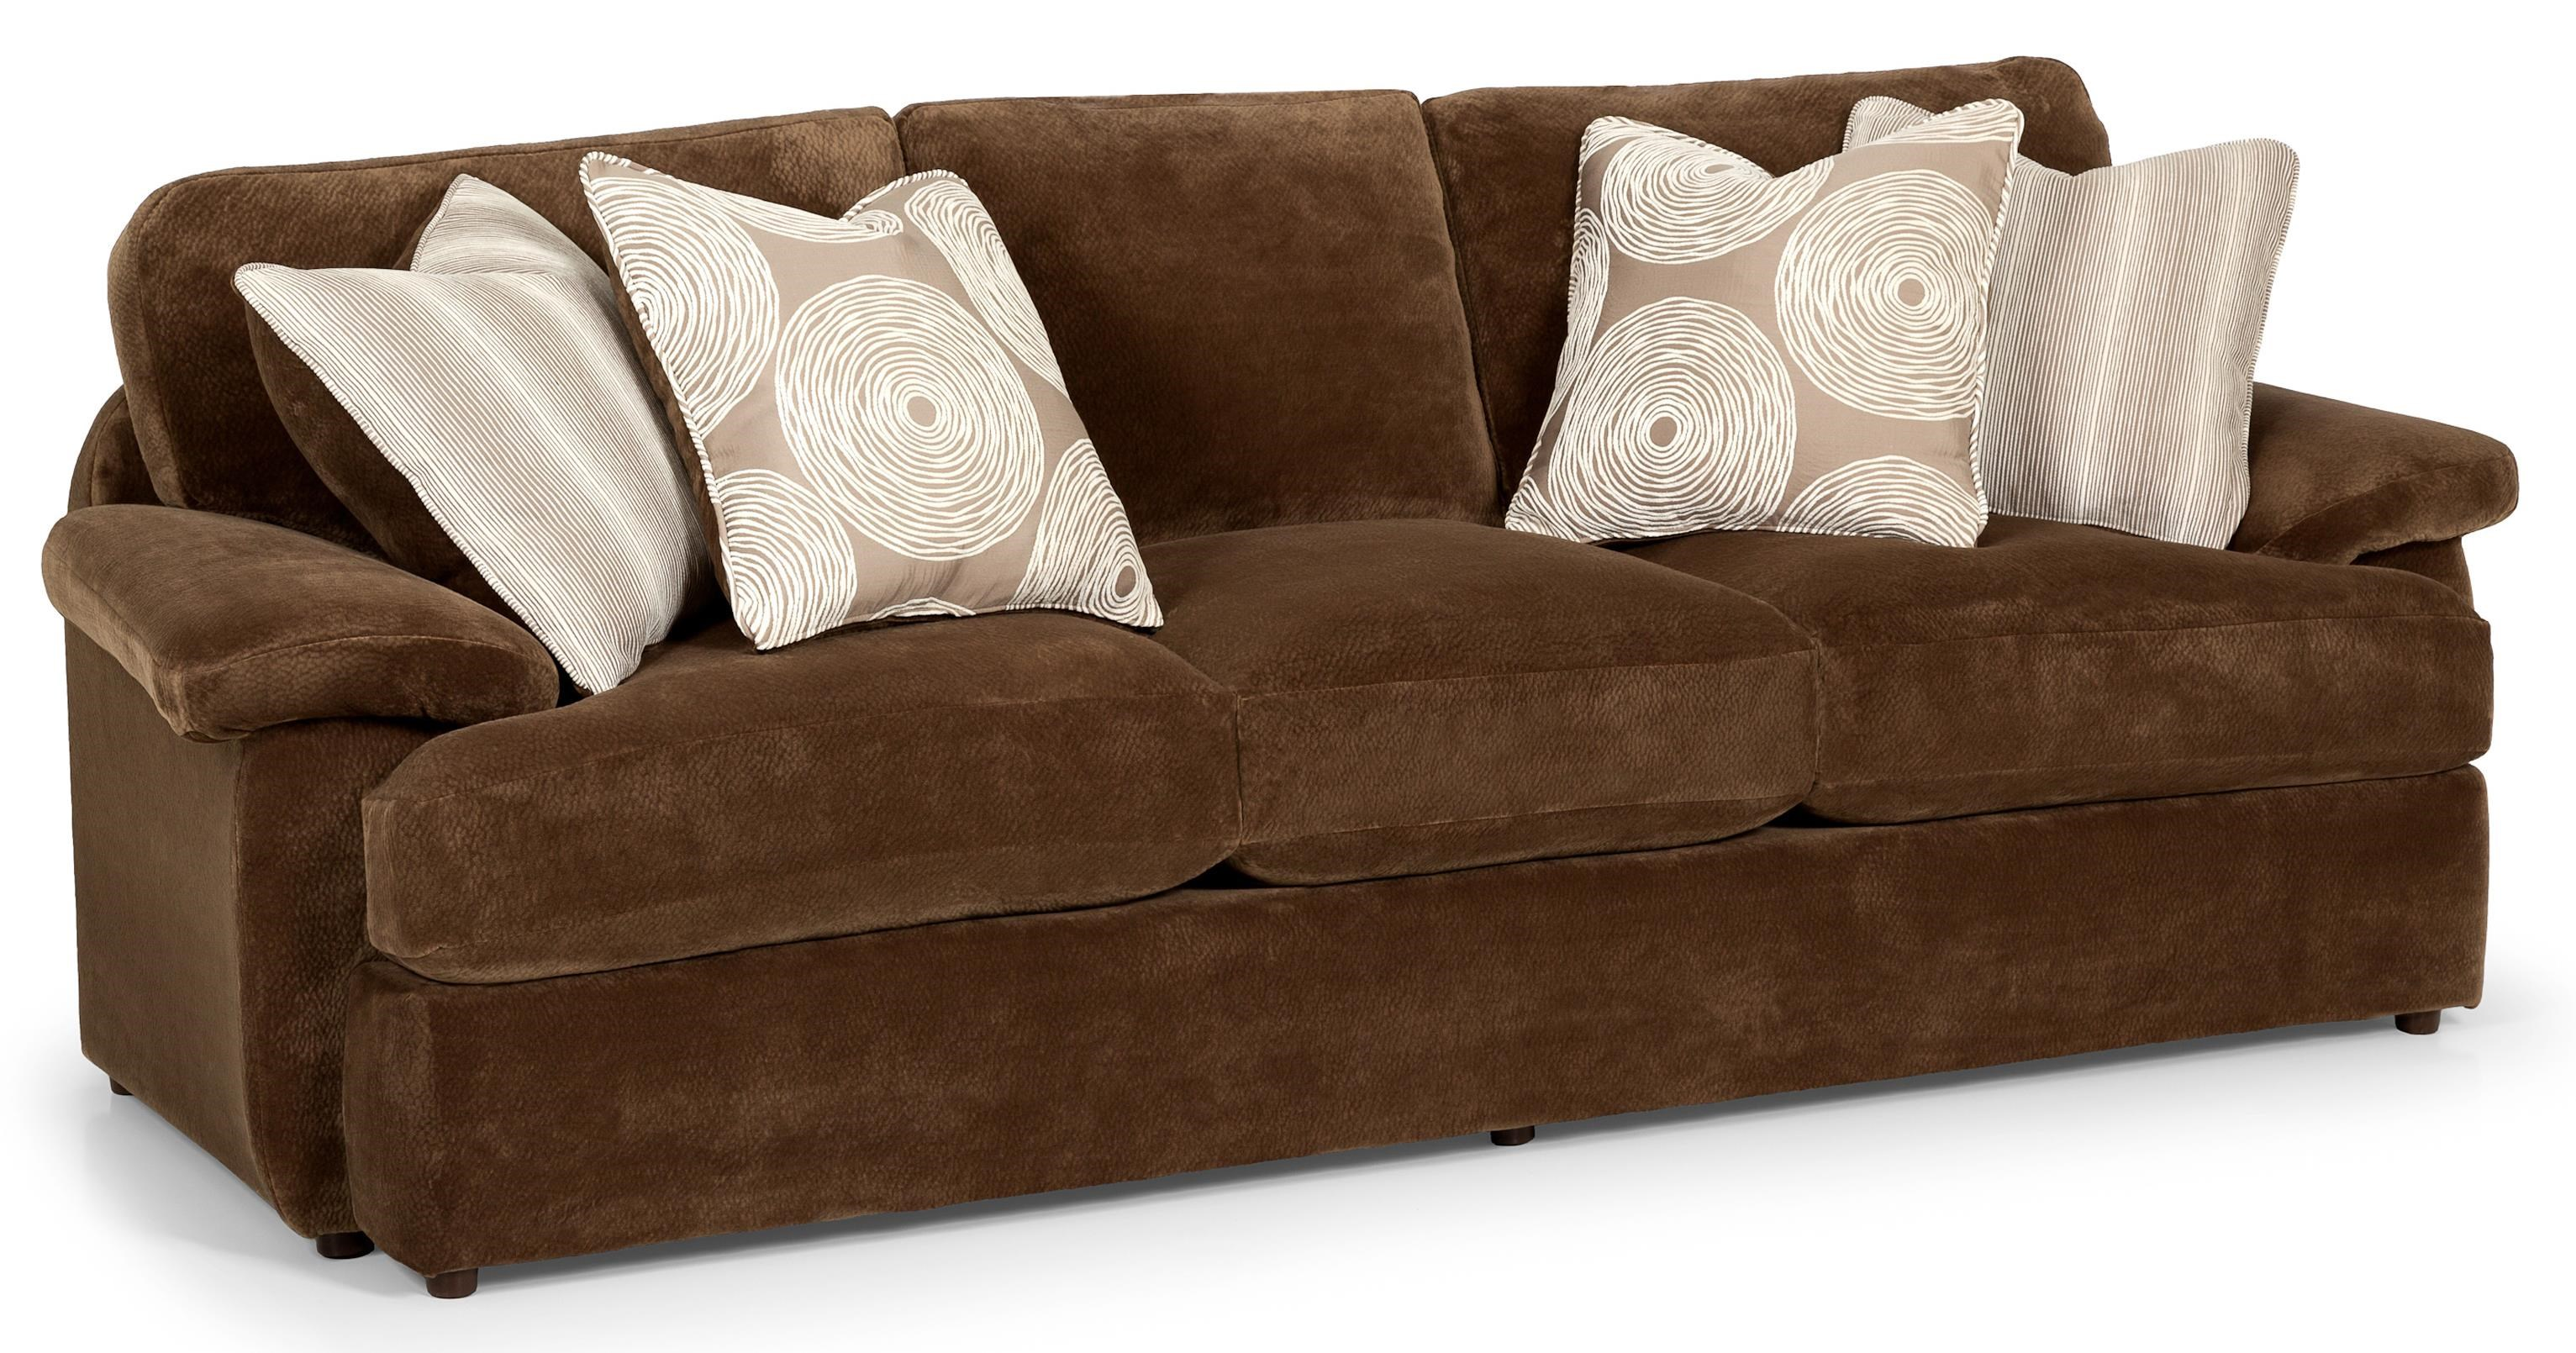 Stanton 186 Casual Three Over Three Sofa With Feather Seating